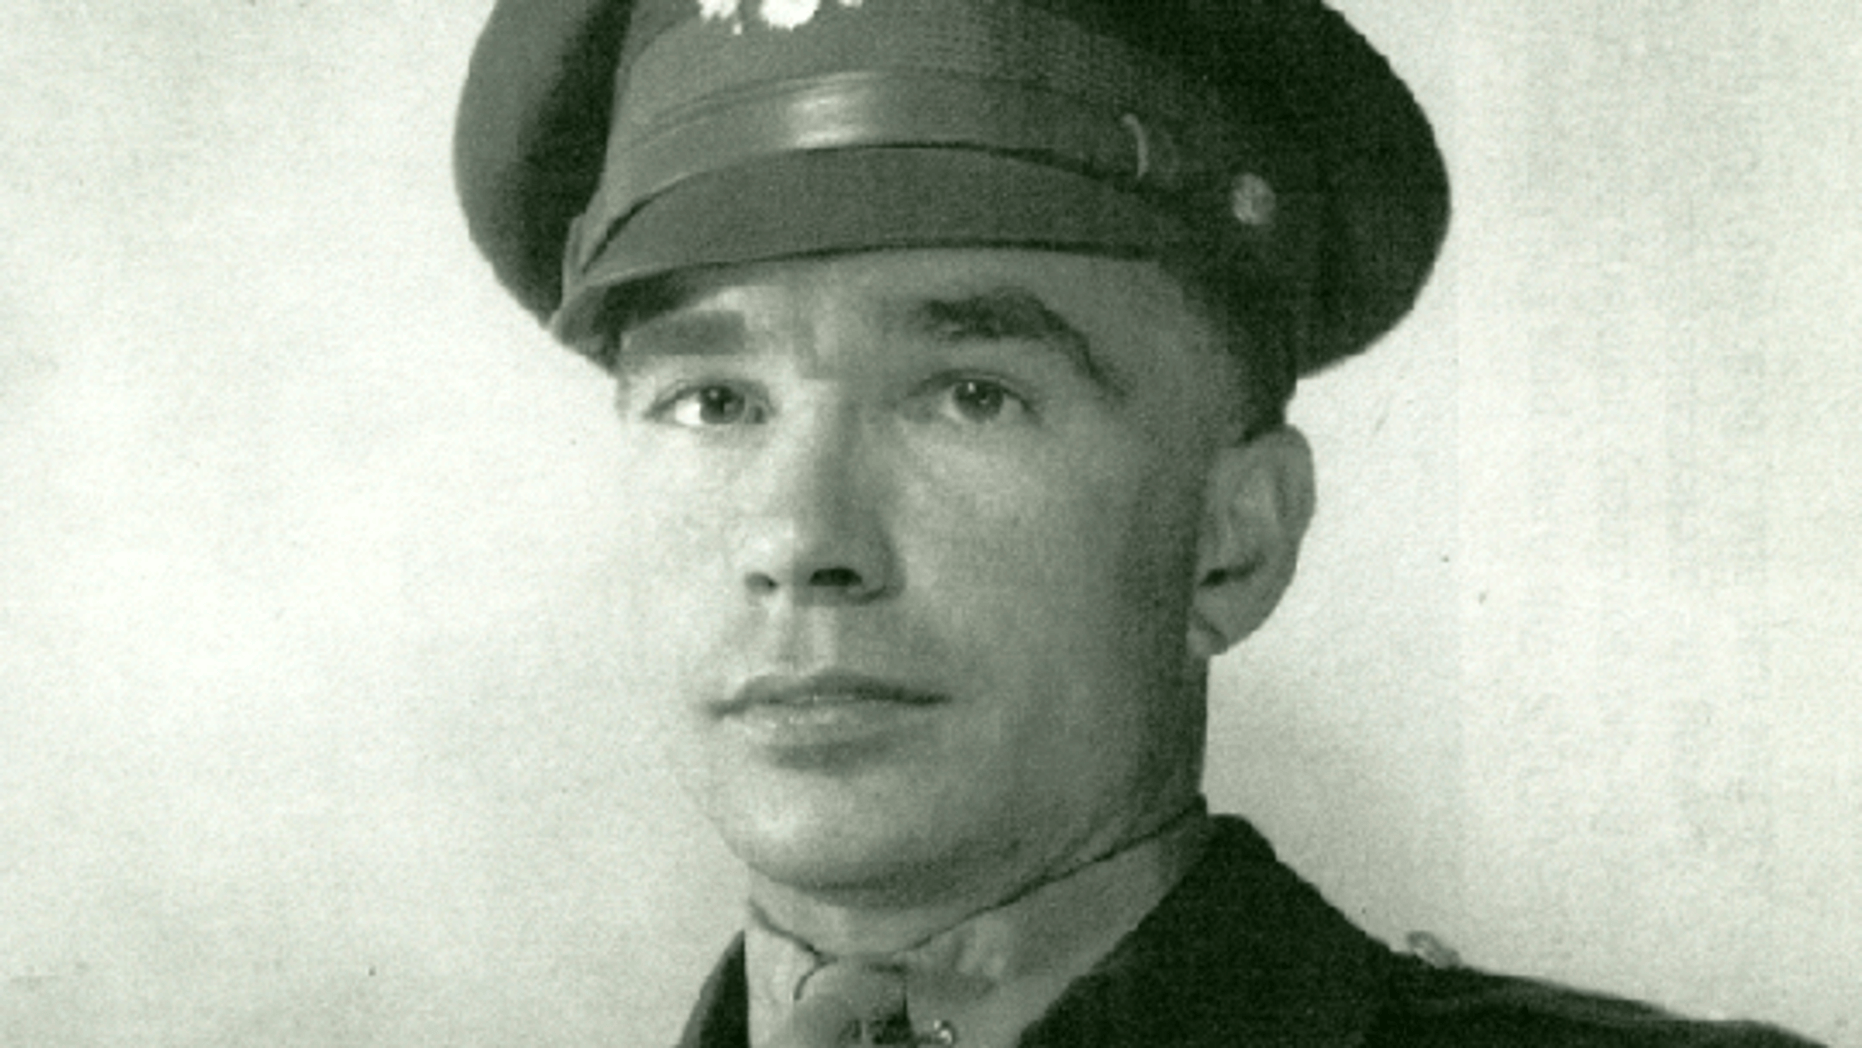 U.S. Army Lt. Garlin Murl Conner is seen in this undated photo.